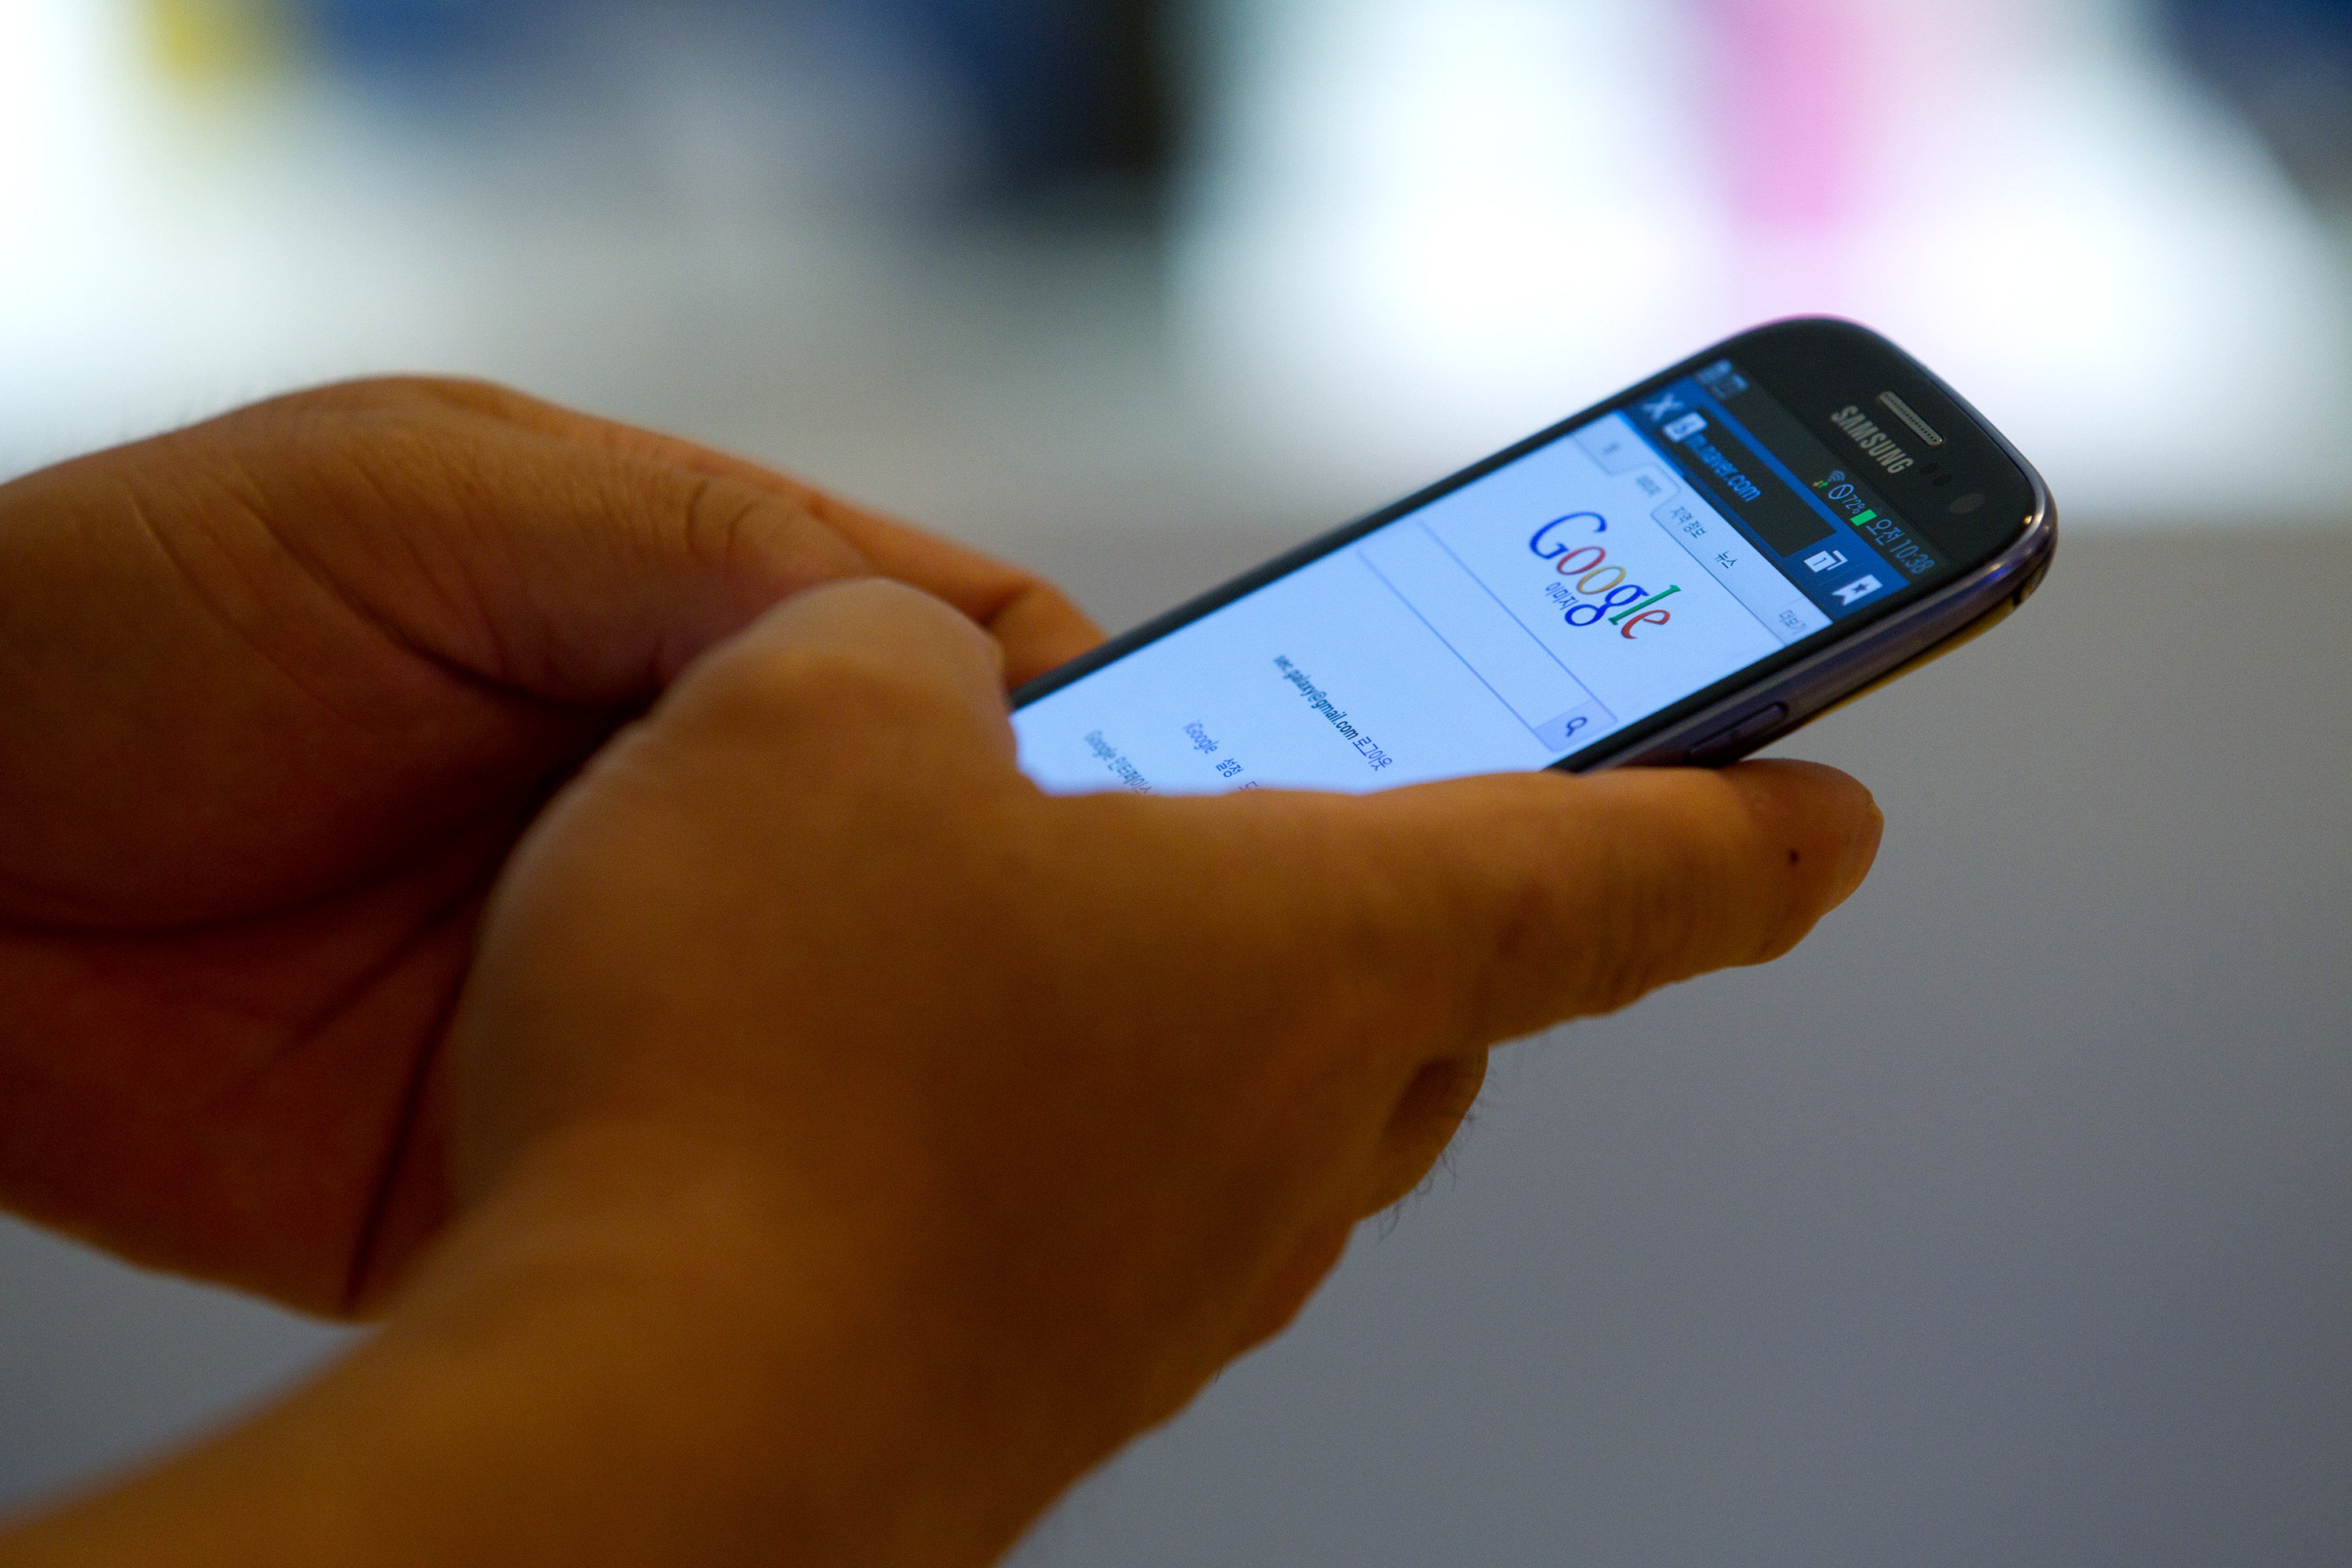 An Android phone running Google software.